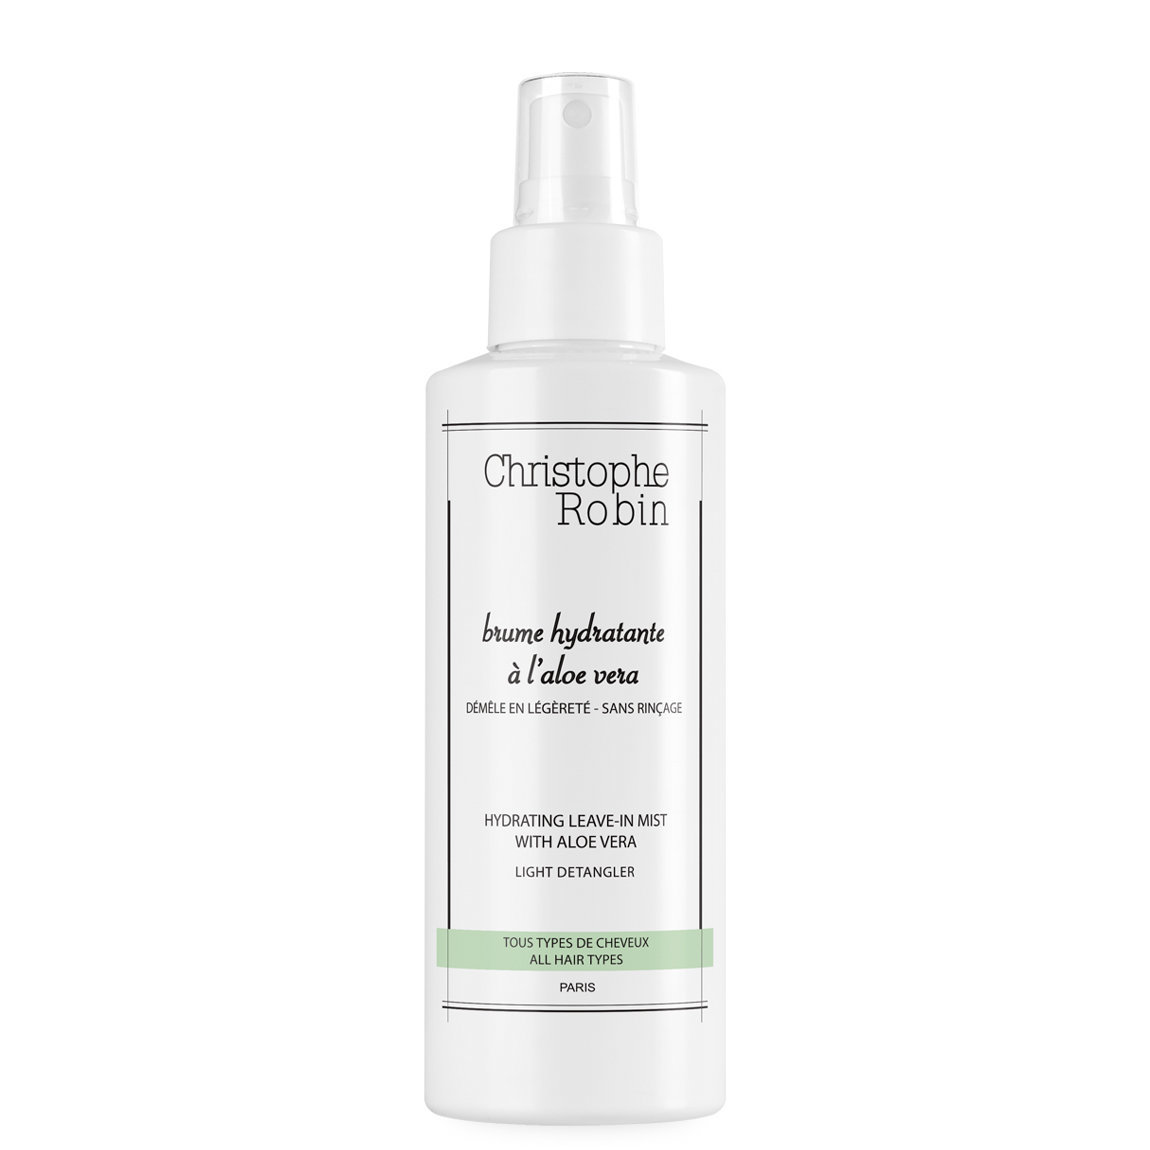 Christophe Robin Hydrating Leave-In Mist with Aloe Vera alternative view 1 - product swatch.